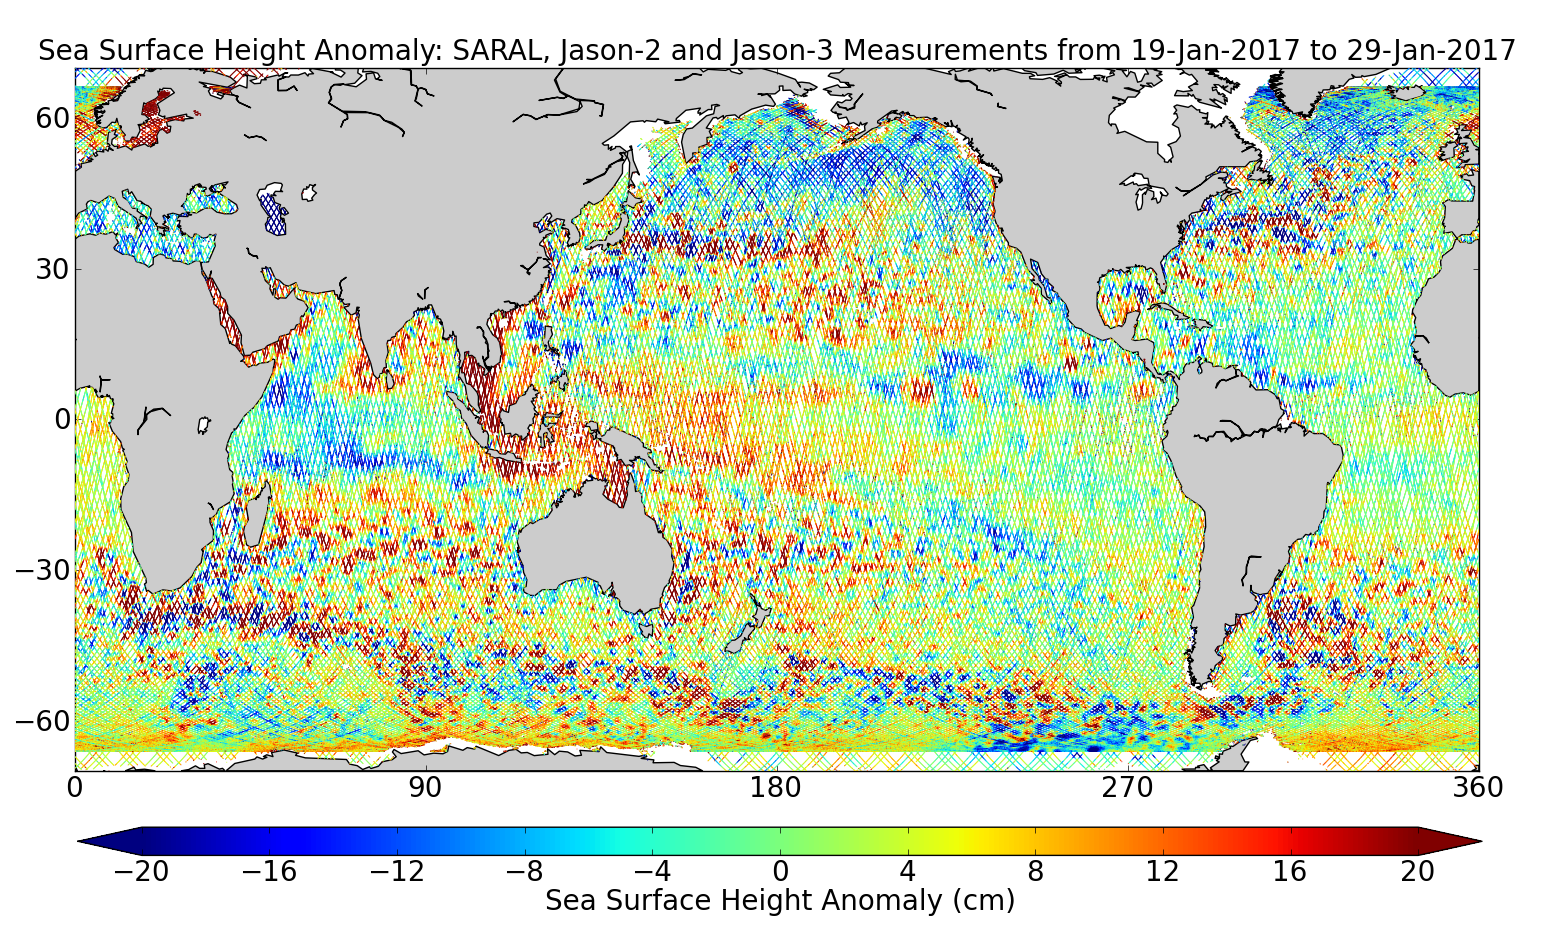 Sea Surface Height Anomaly: SARAL, Jason-2 and Jason-3 Measurements from 19-Jan-2017 to 29-Jan-2017